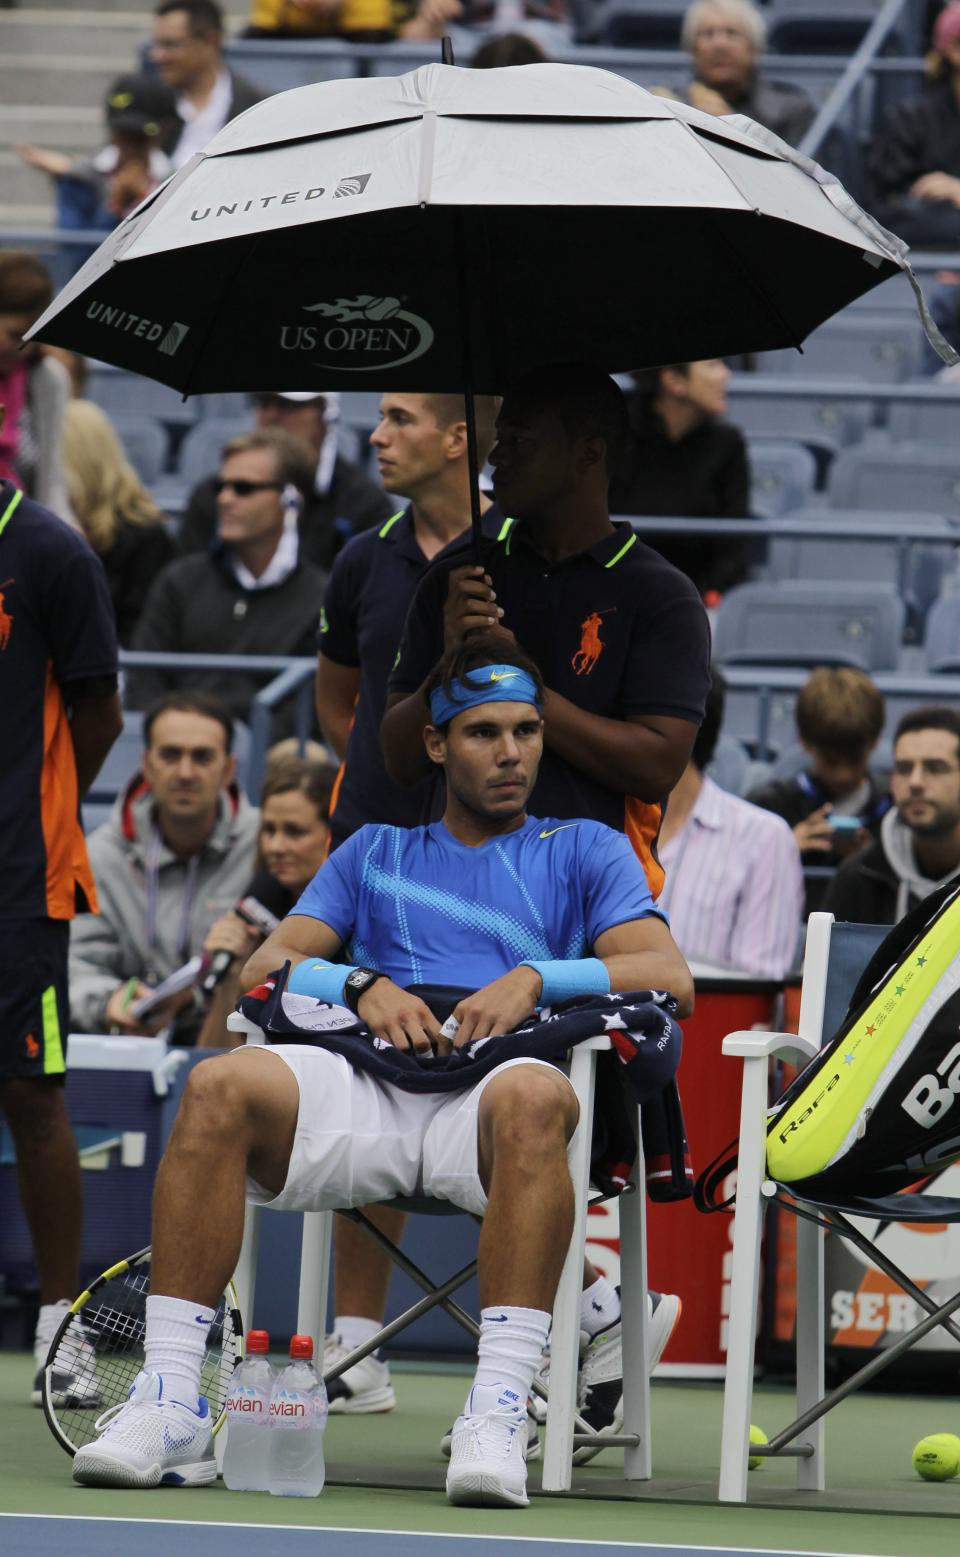 Rafael Nadal of Spain sits underneath an umbrella during his match against Gilles Muller of Luxembourg at the U.S. Open tennis tournament in New York, Wednesday, Sept. 7, 2011. Play was suspended due to rain. (AP Photo/Mike Groll)